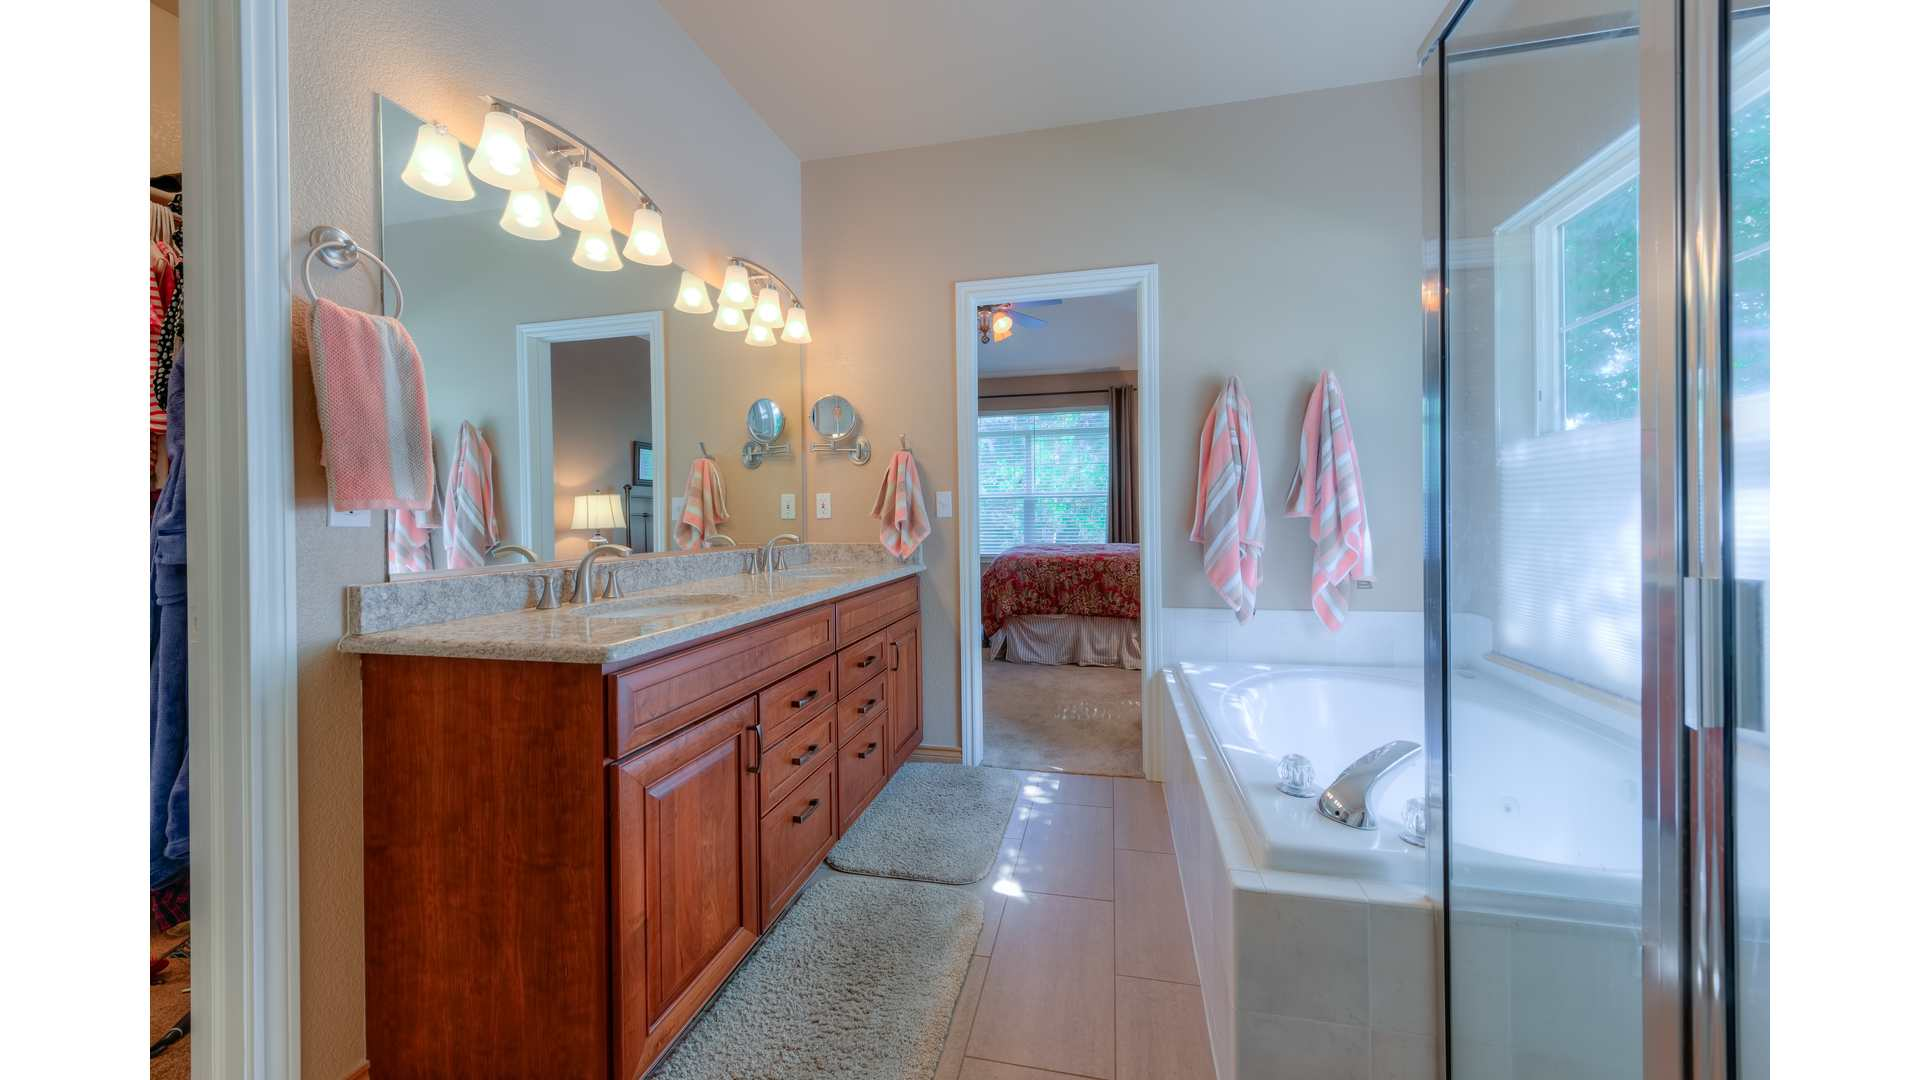 16 1995 Master Bath2 5TMDE Default RVT2 NR 1920 - Real Estate Photos